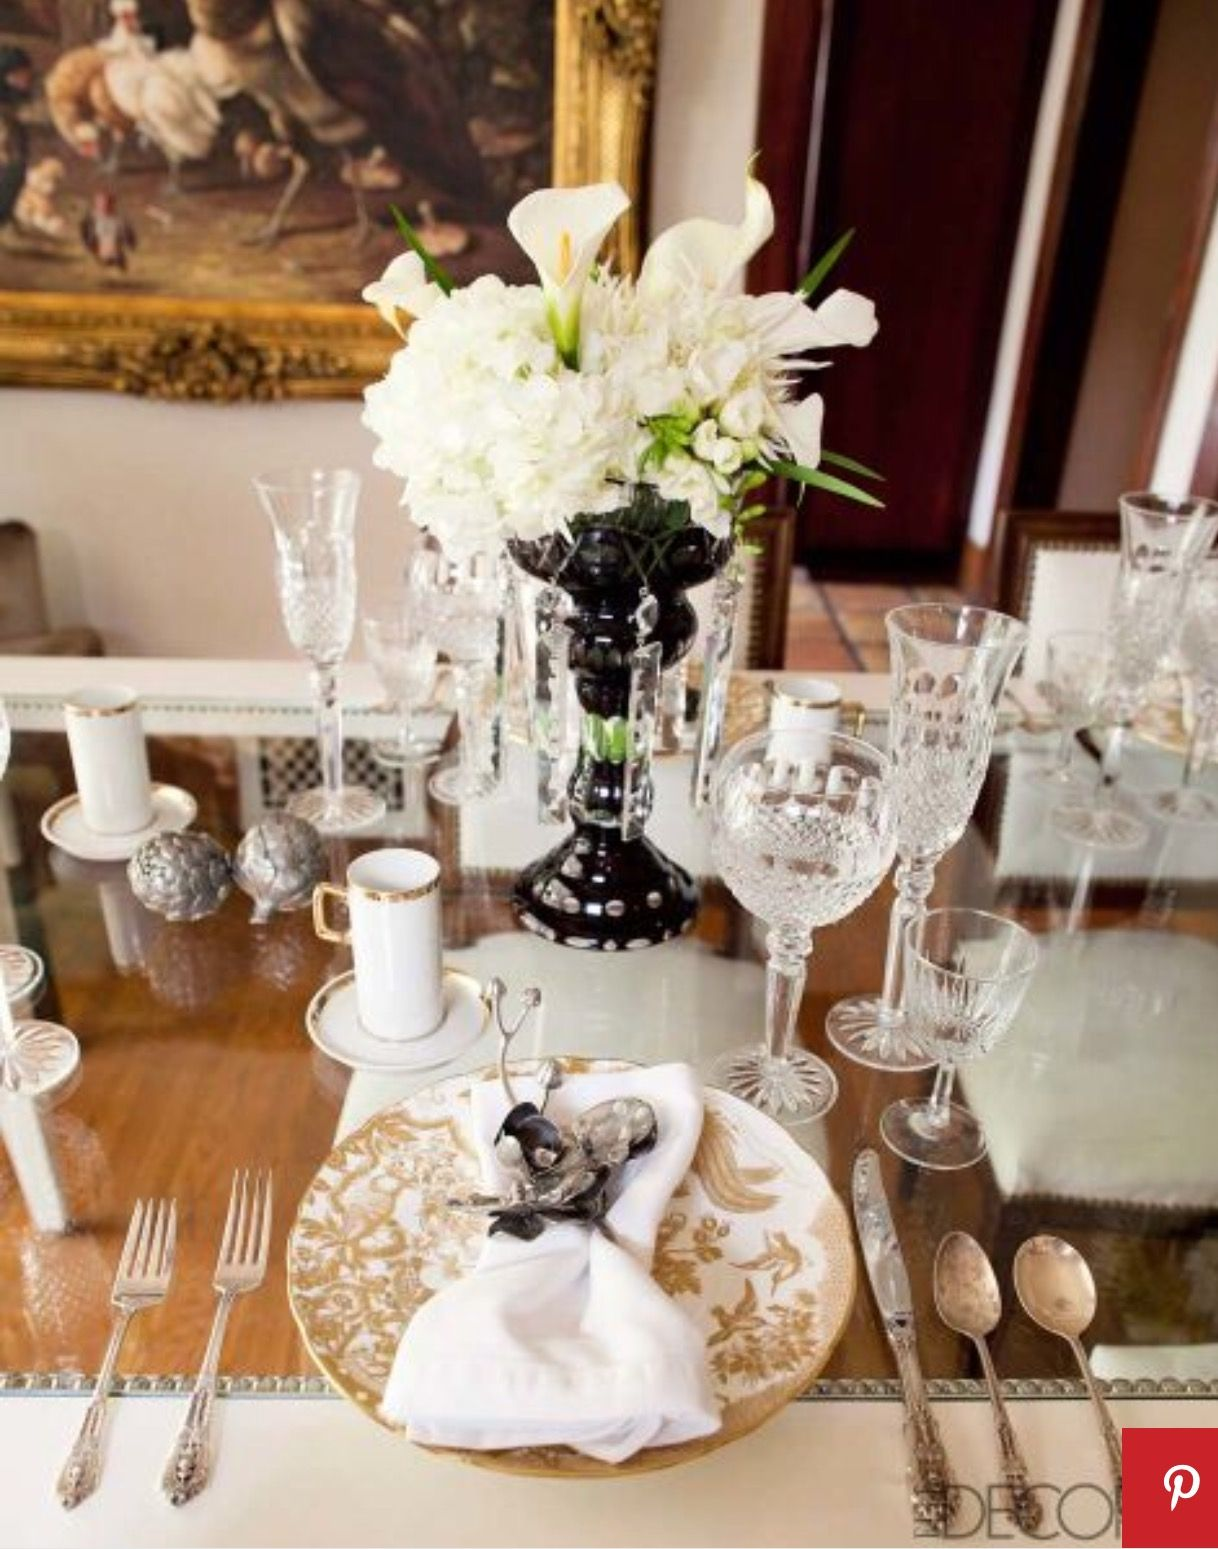 Janie Bryant table setting in her home